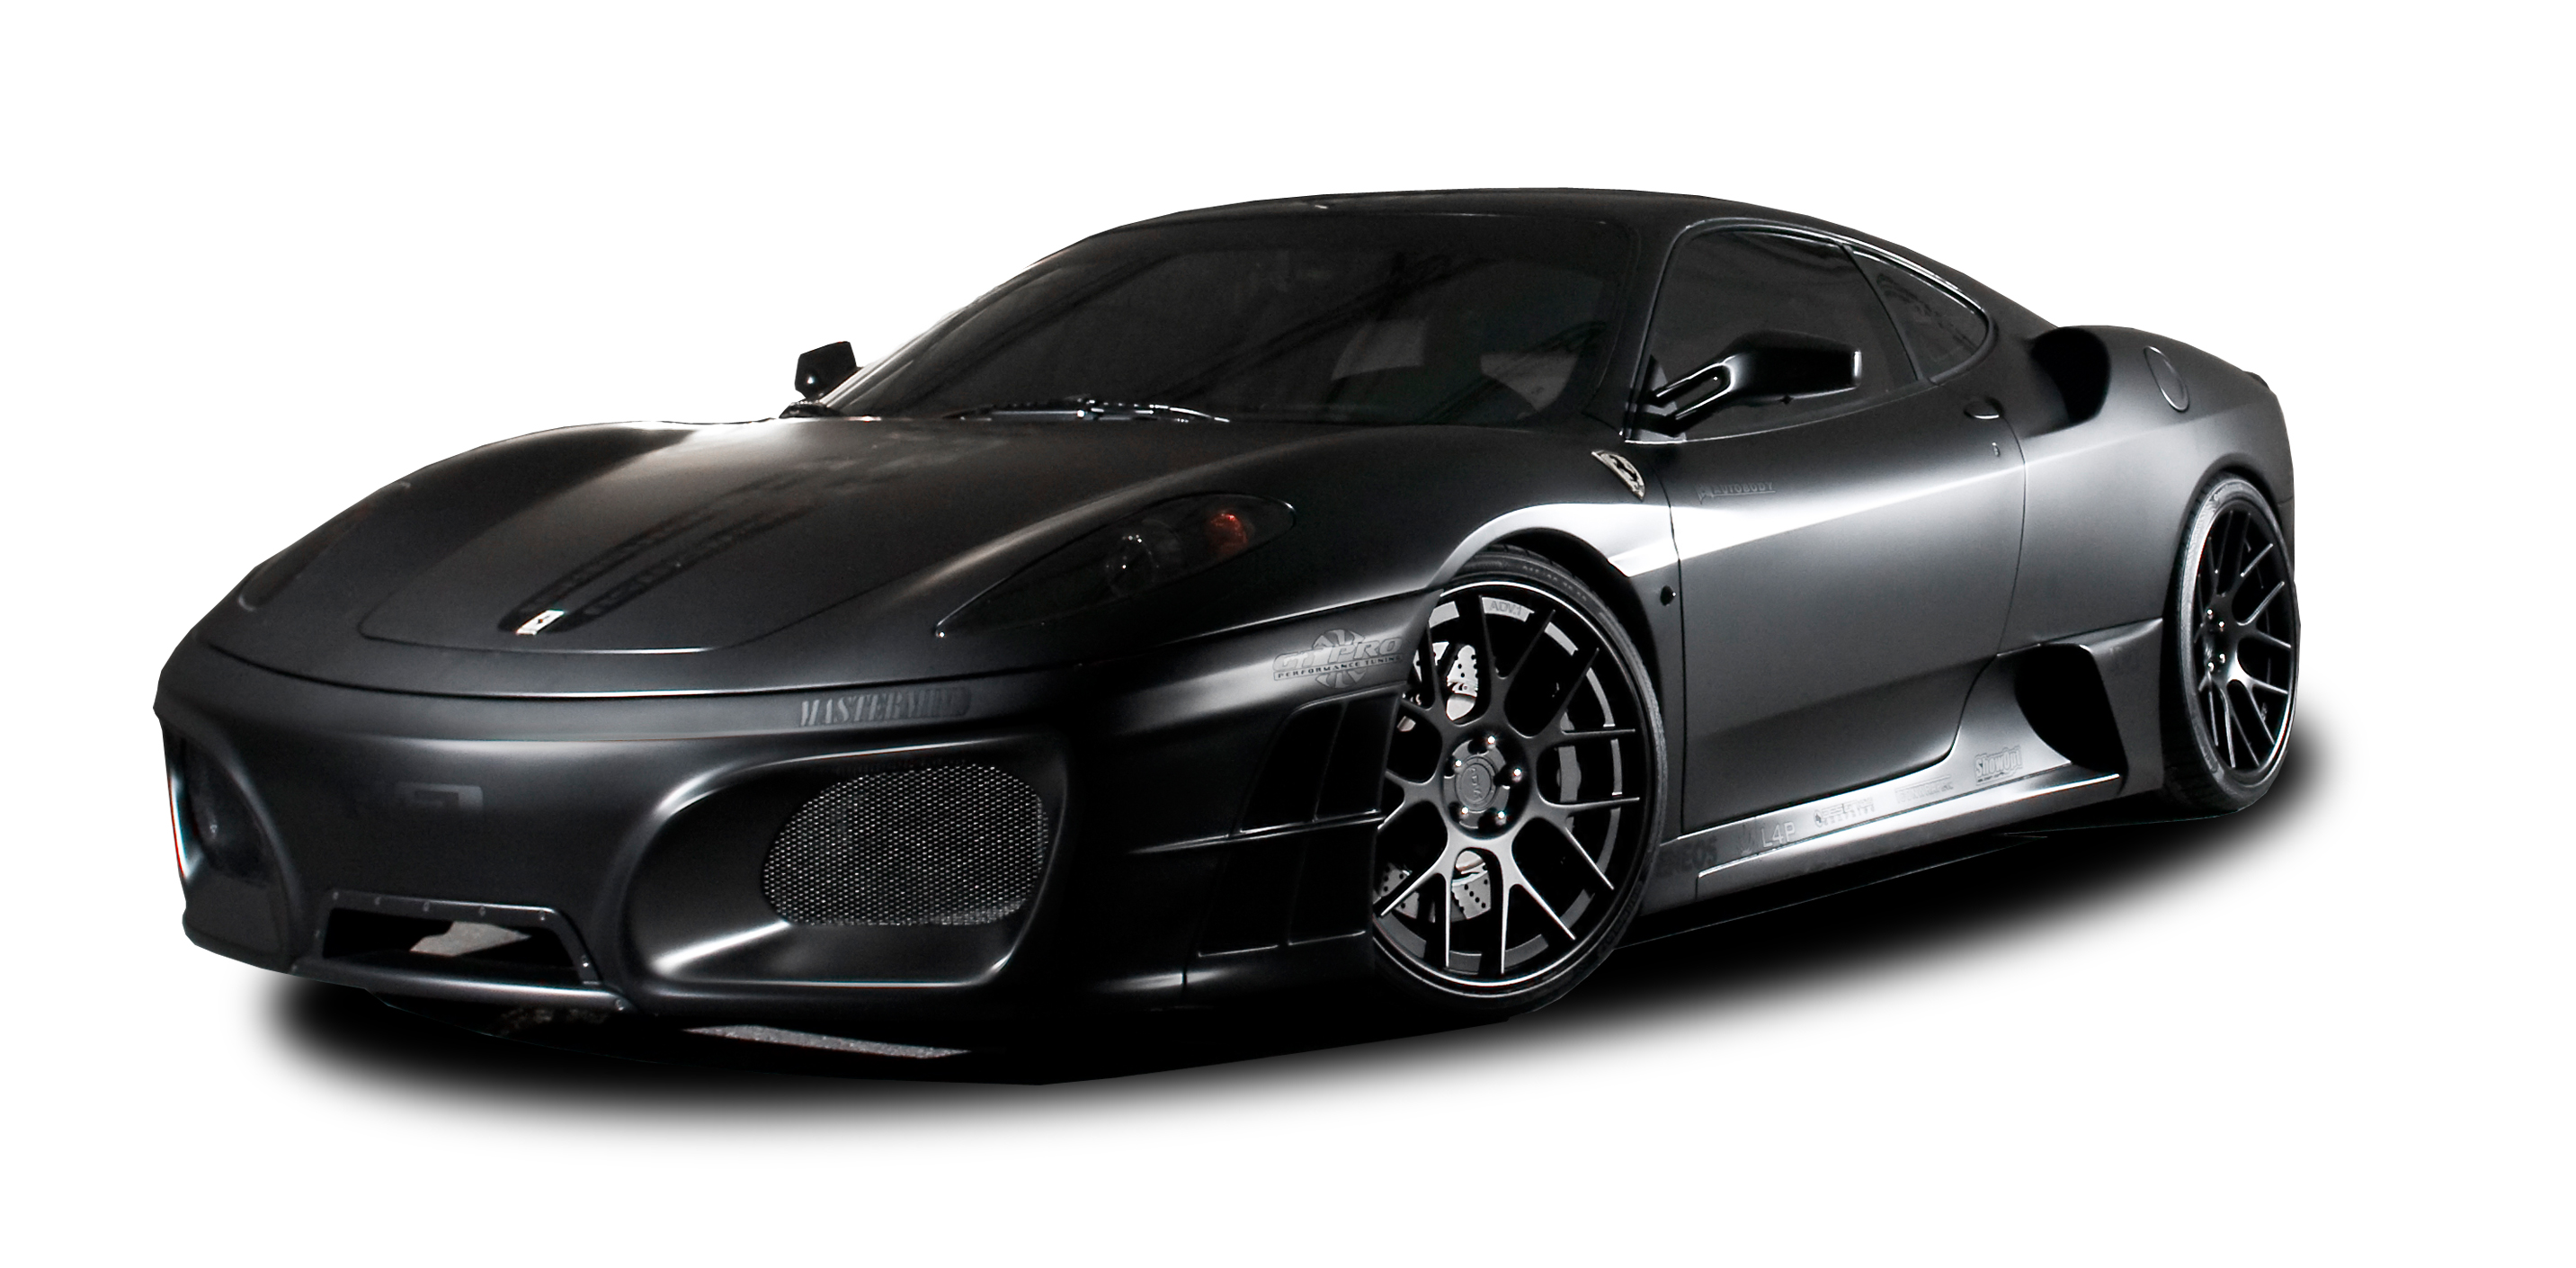 Black and white cars pictures 18 desktop wallpaper - Car wallpaper black and white ...